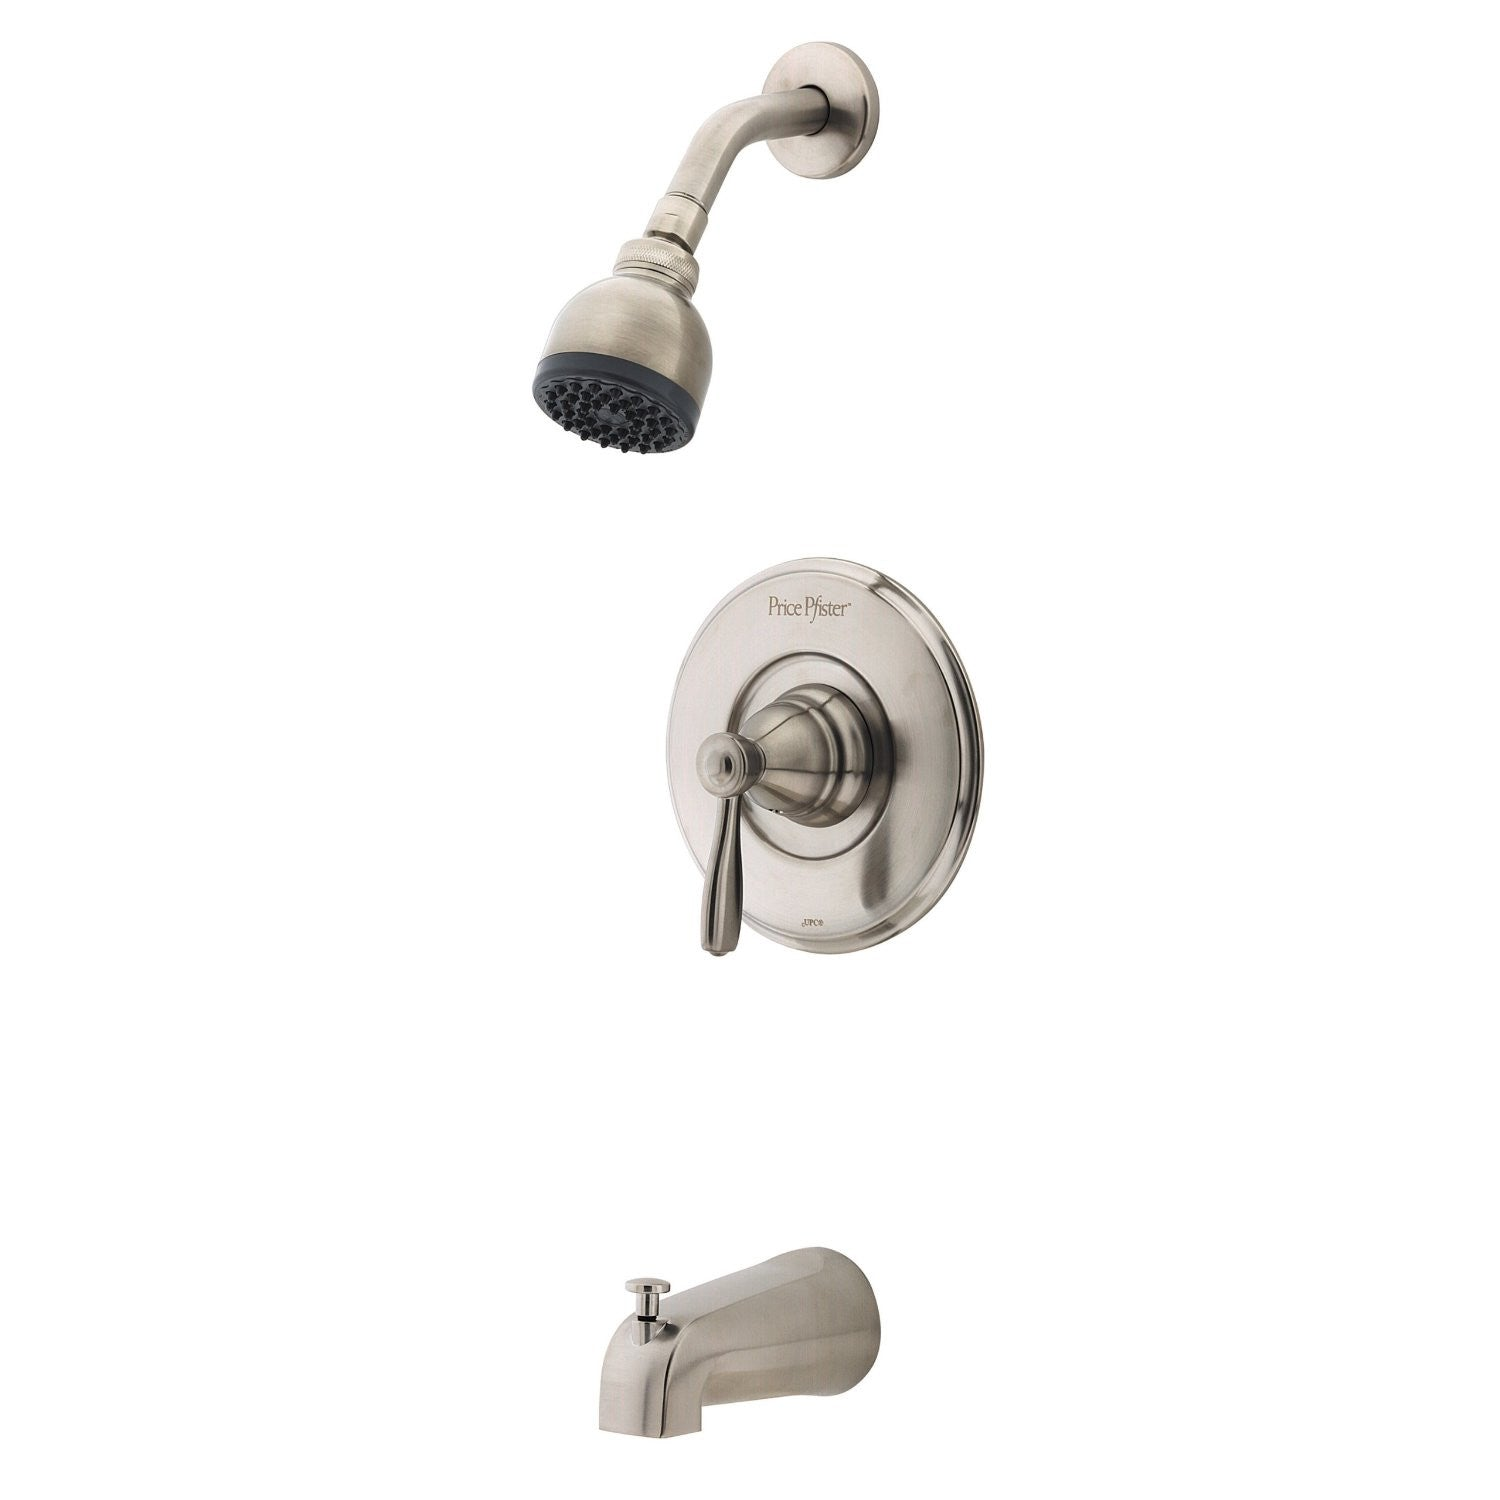 Price Pfister Bath Faucet – Your Home Supply